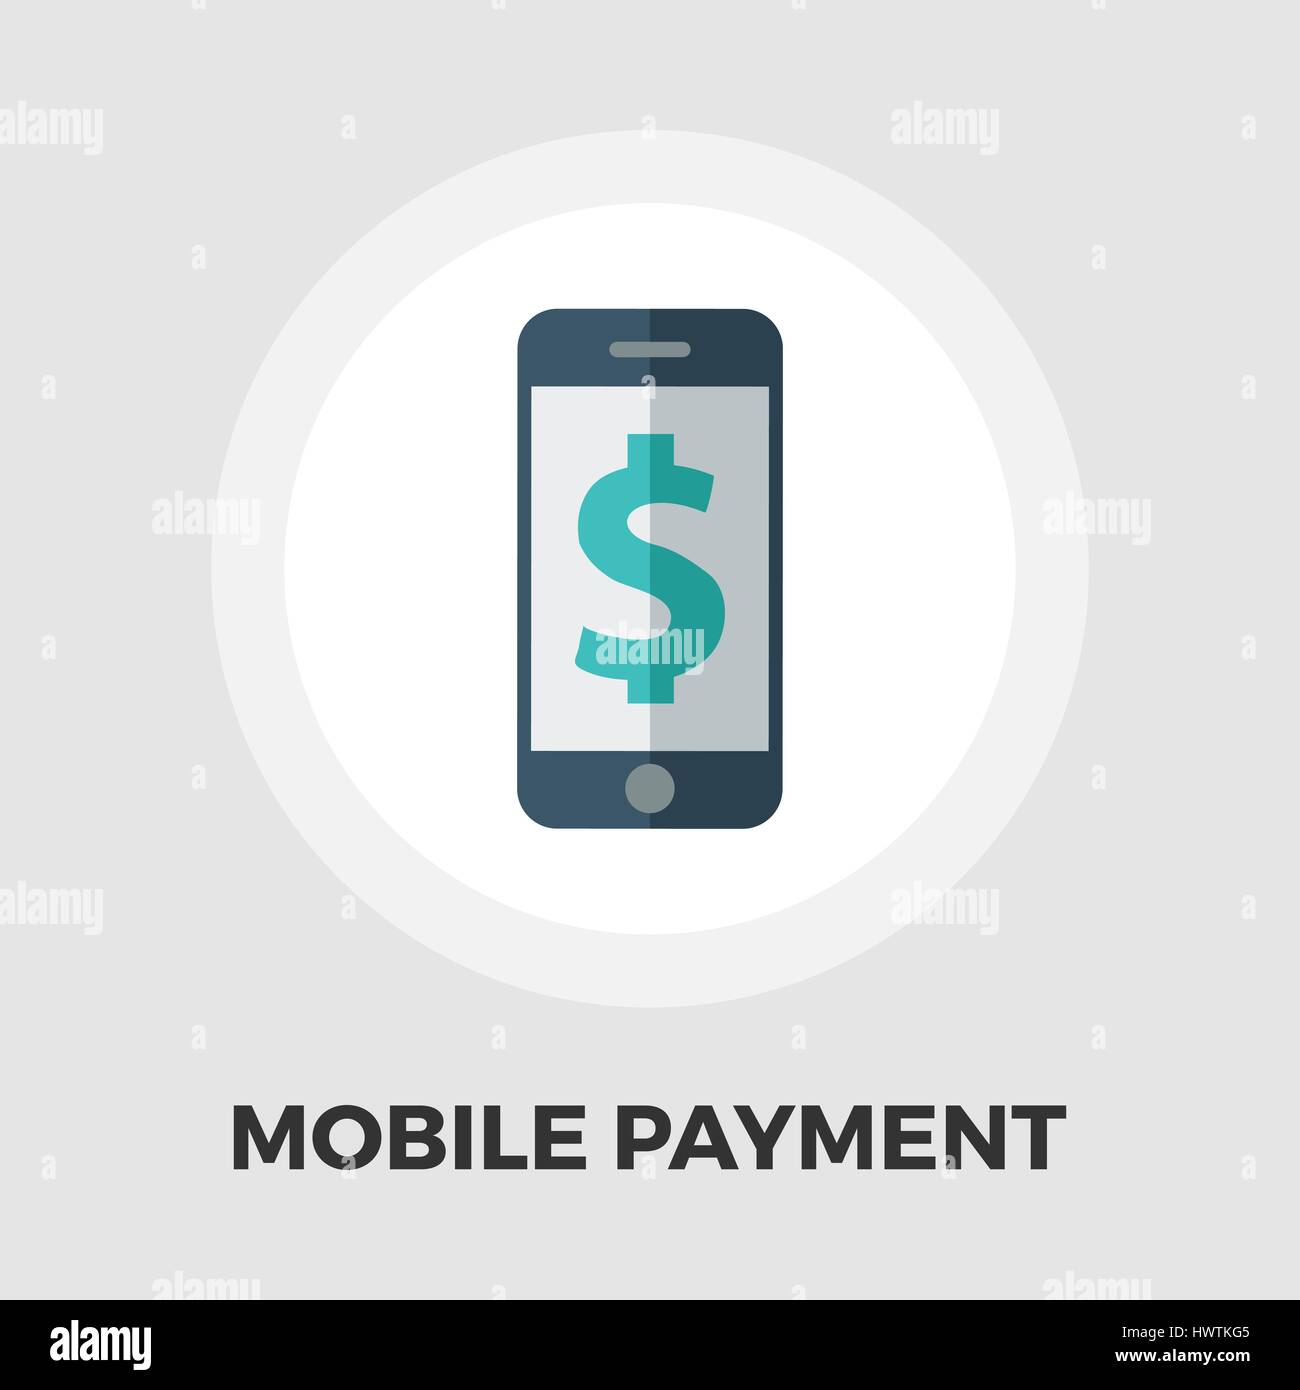 Mobile payment icon vector. Flat icon isolated on the white background. Editable EPS file. Vector illustration. - Stock Vector